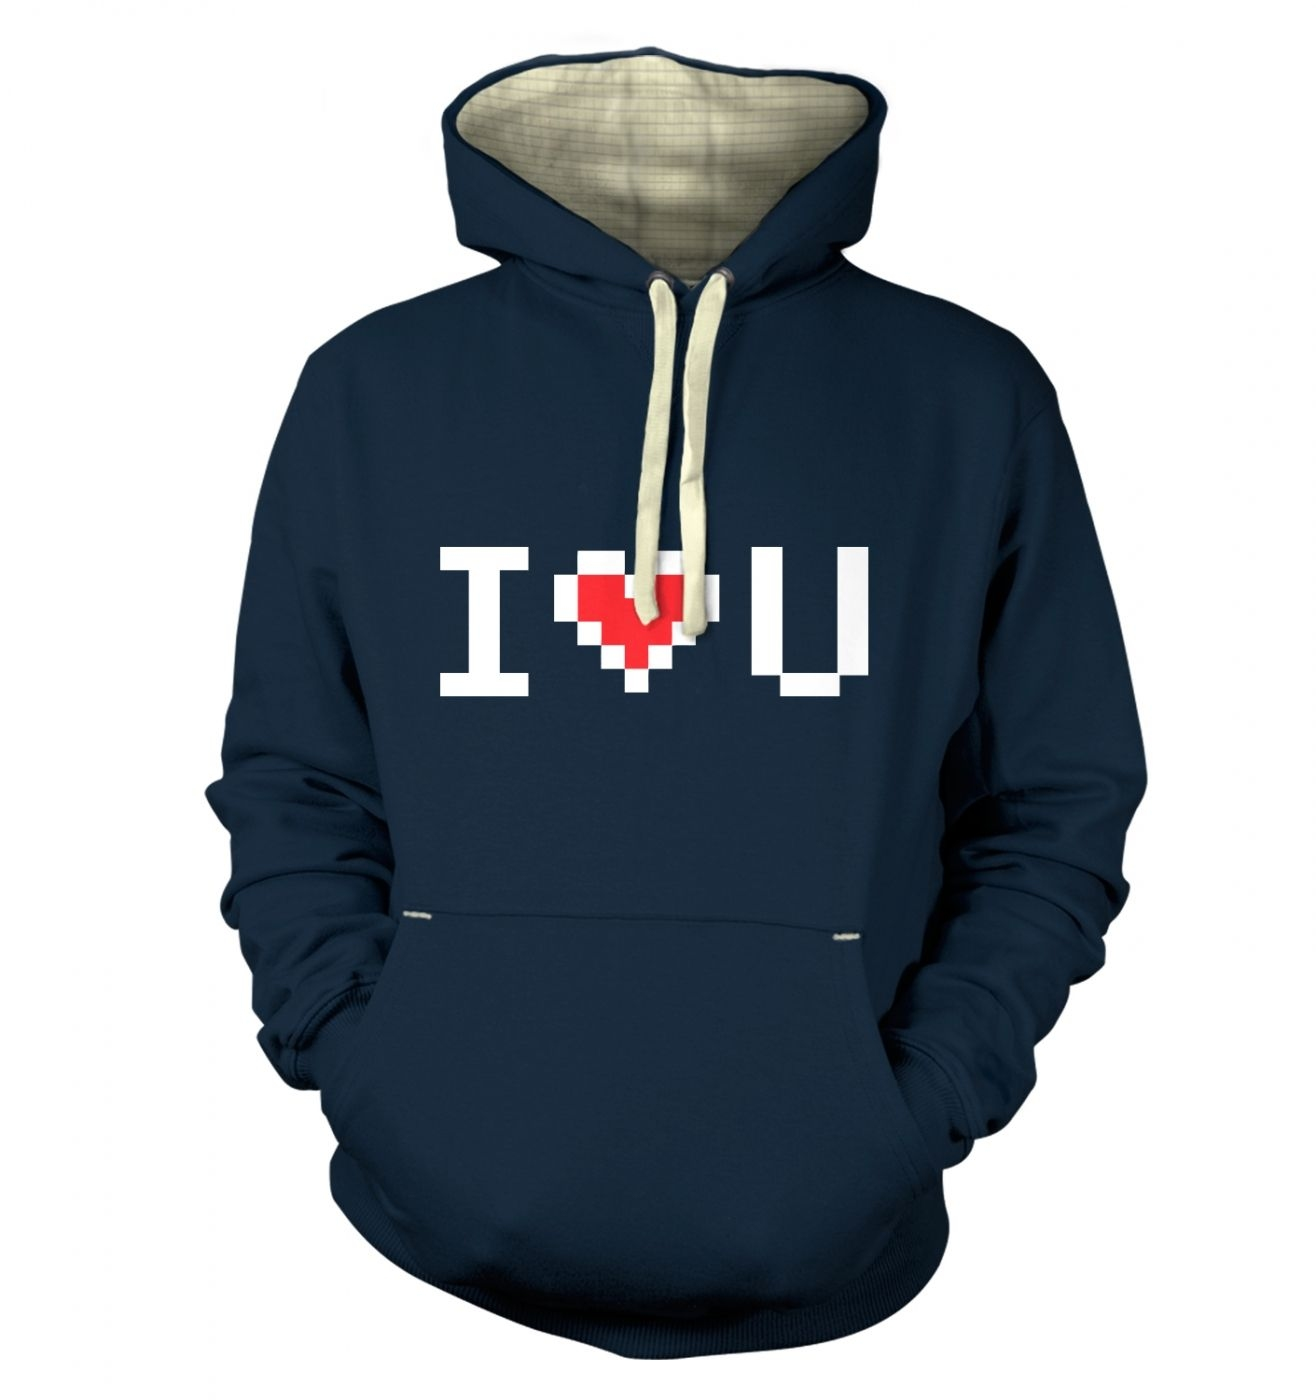 Pixelated I heart U Adult Premium Hoodie